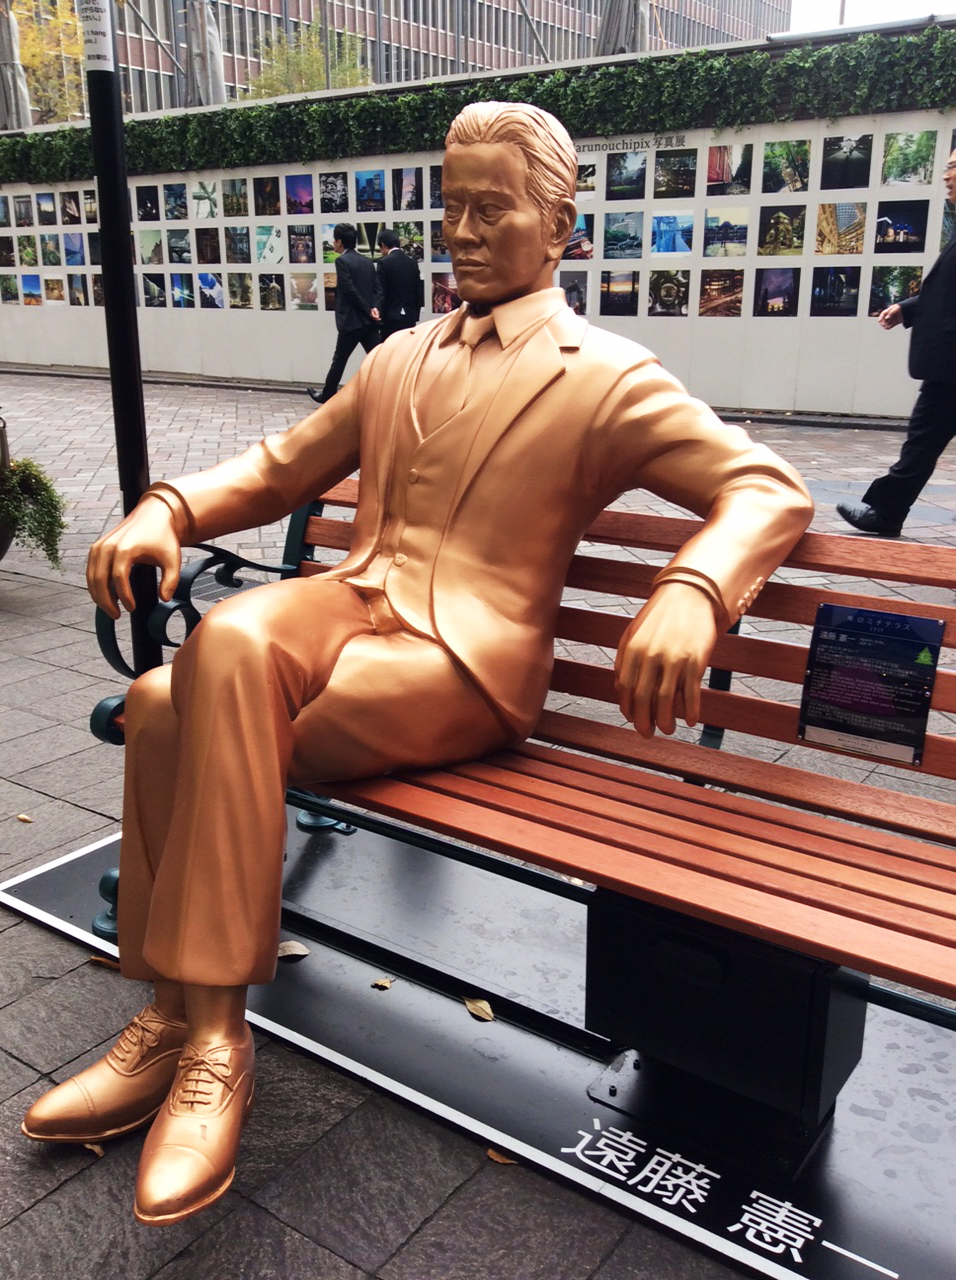 A brand-new park bench with a seated copper coloured figure of a man in a 3-piece suit, tie and lace-up shoes, against a background of screen-off building work.